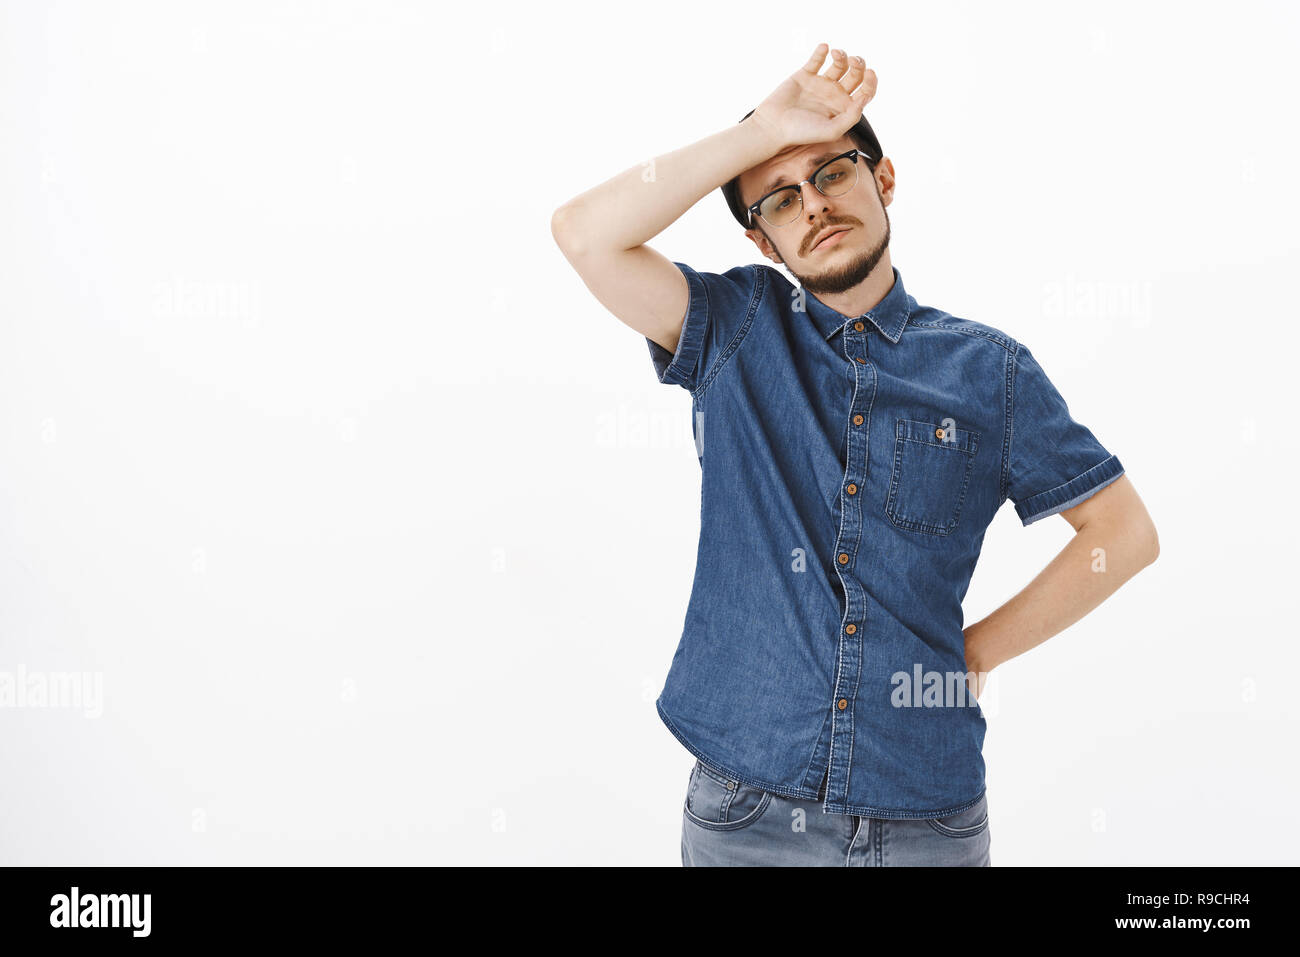 Man feeling tired and upset no one helps him whiping sweat of forehead with arm holding hand on waist gazing down with unhappy sad expression standing exhausted and concerned over gray background - Stock Image